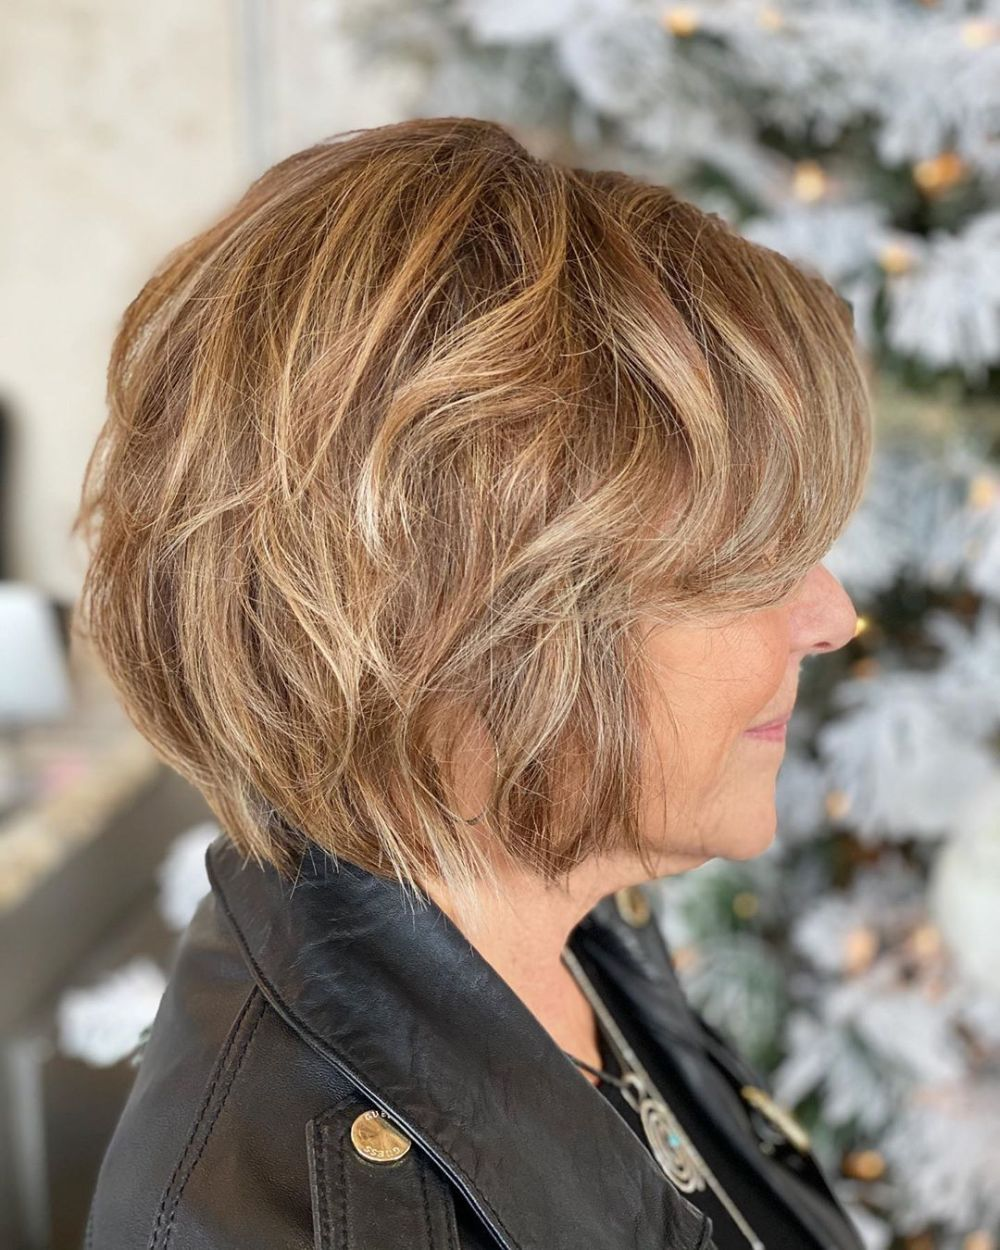 Looks Great in 60s with Cute Short Layered Haircuts (Updated 2021) b01a8794047a0e3d22a65ddcf686995a